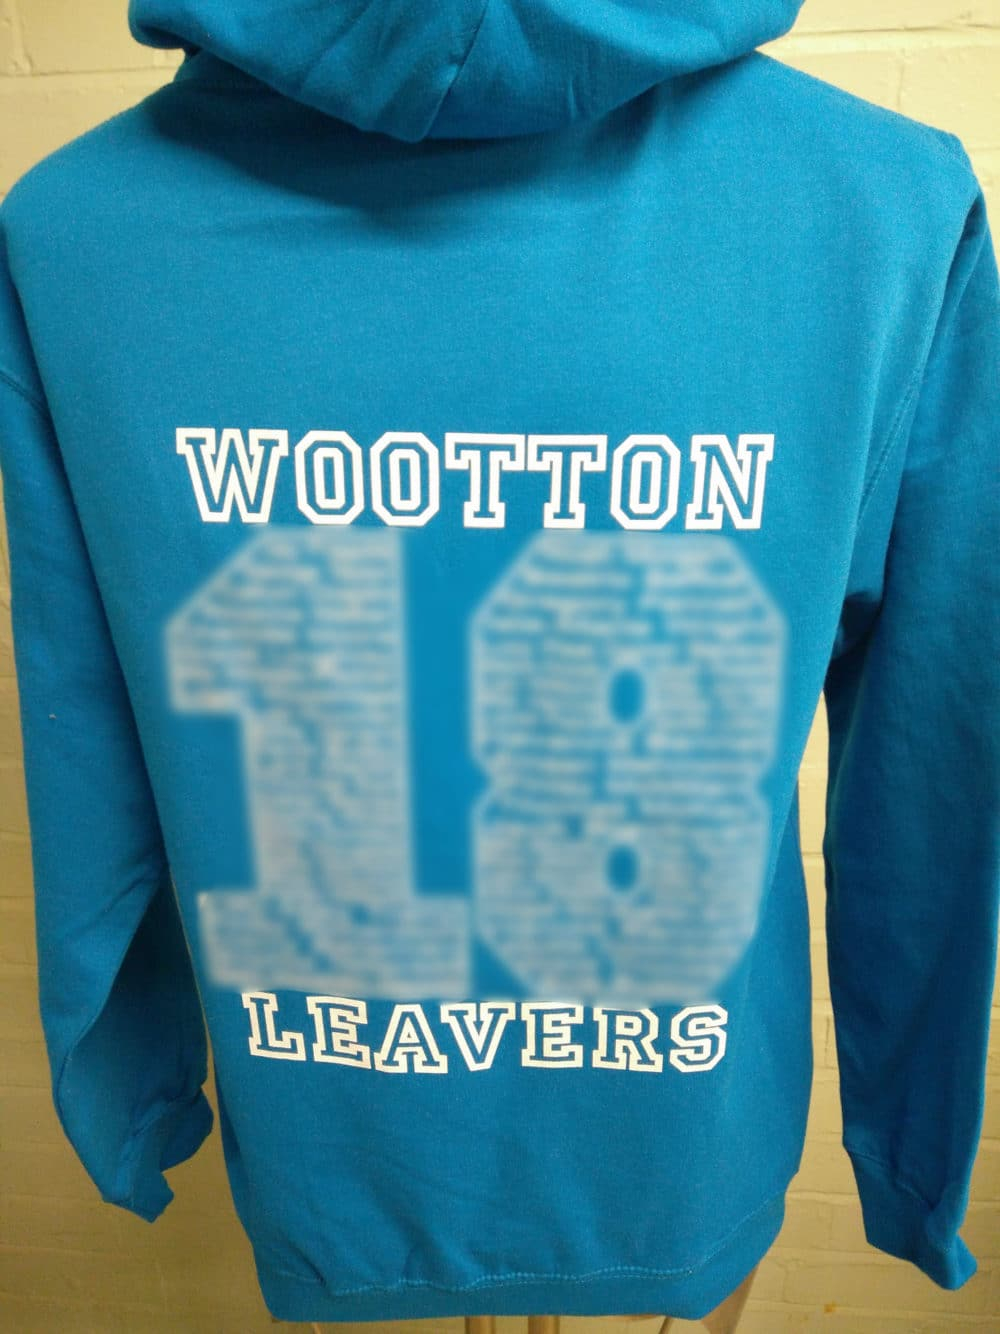 Wootton Primary School Blue Custom Printed Leavers Hoodies 2018 2